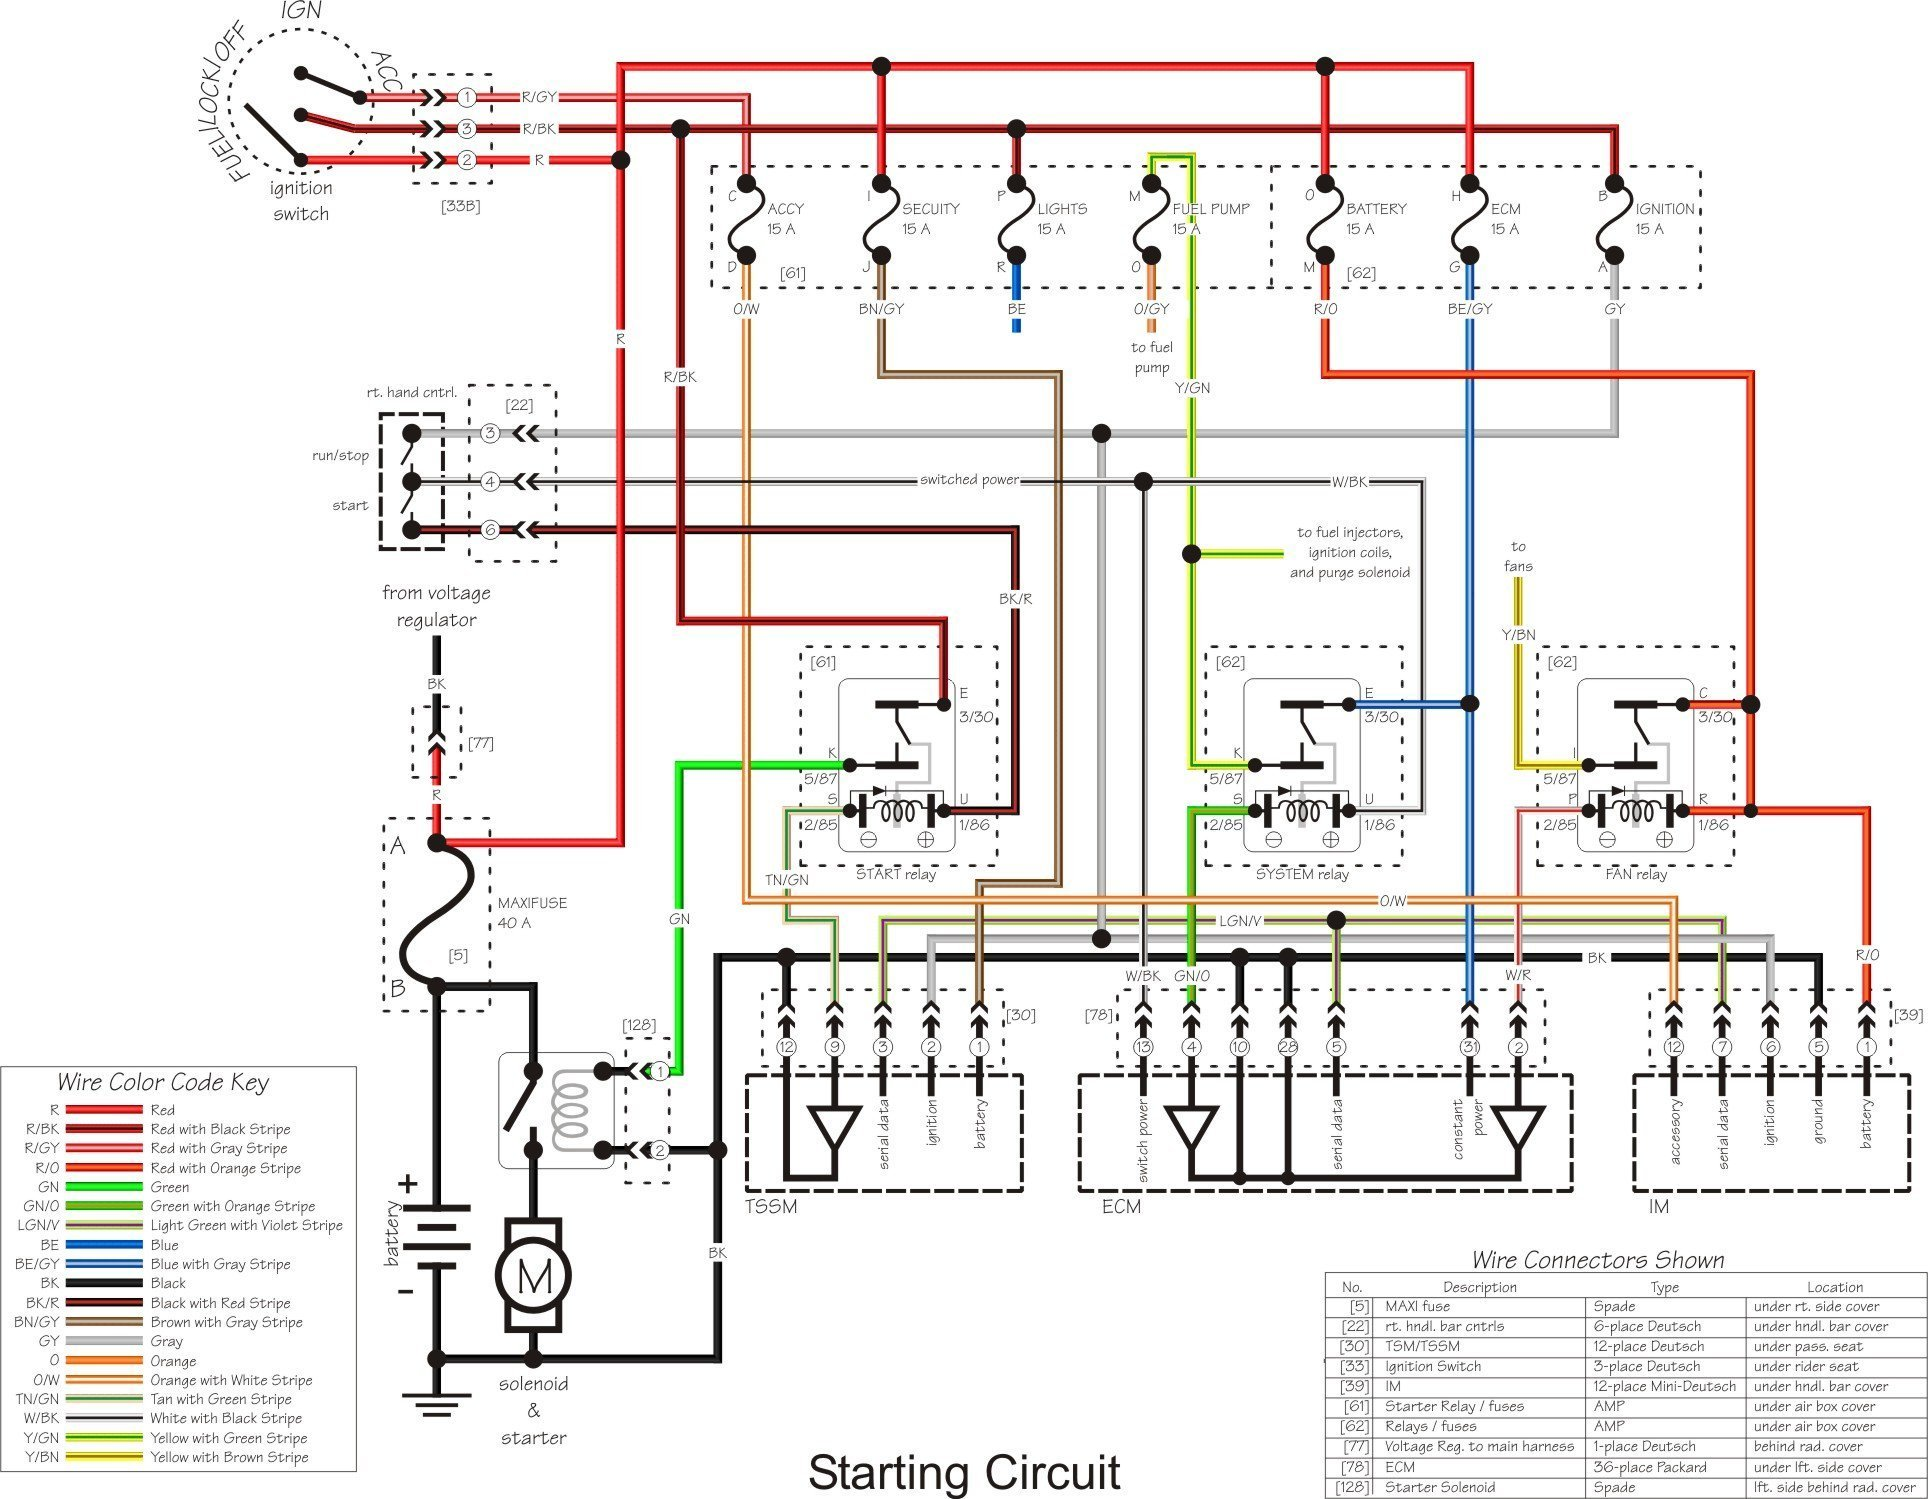 Bfb F A Ba A in addition Puch Wheels X as well Schaltplan Ex B besides Img Bc B A E E D E C Bc A Dec moreover Johnspec. on harley engine schematics